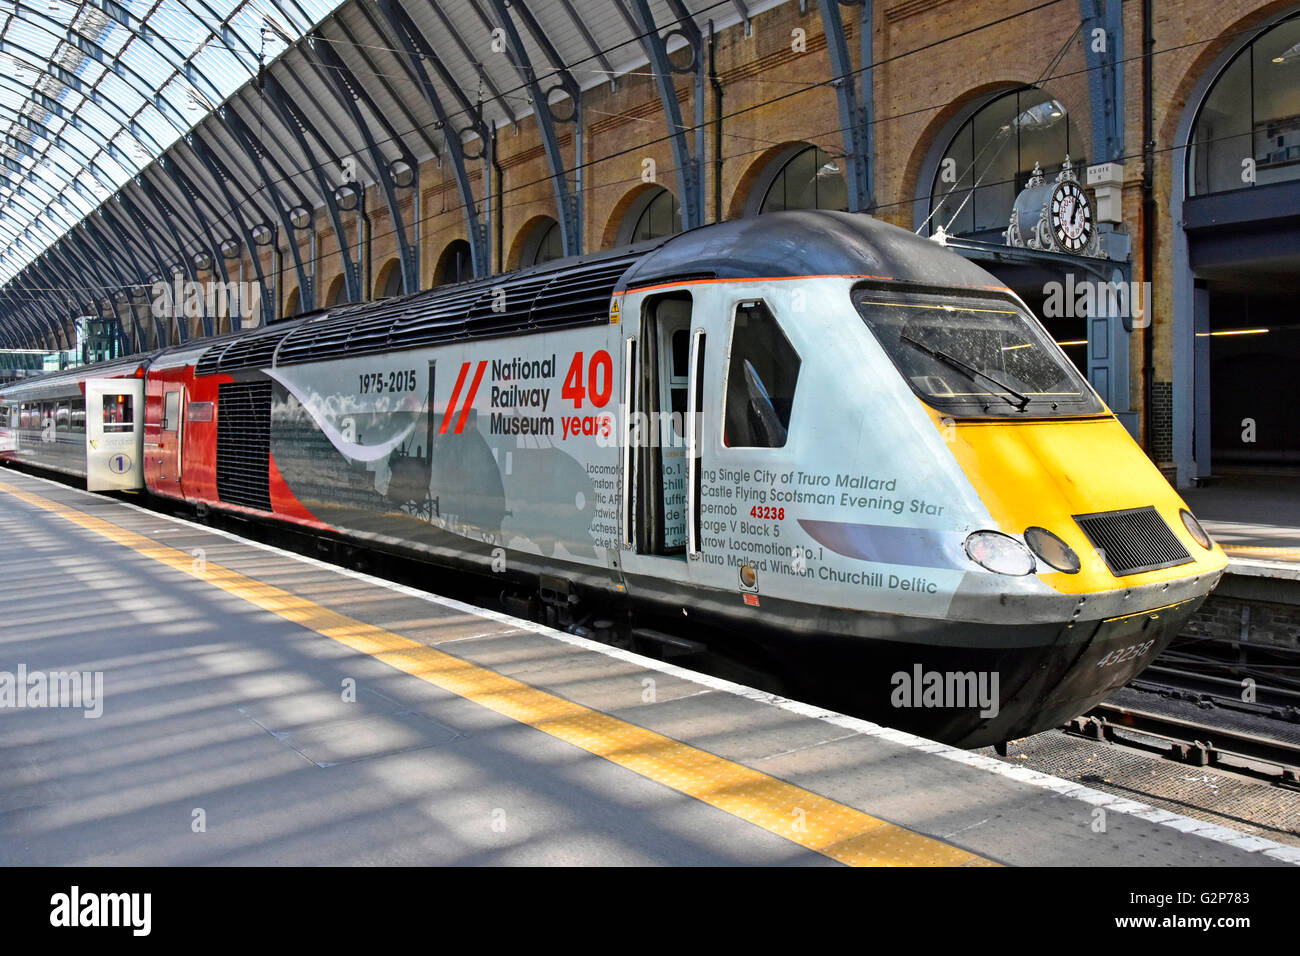 Locomotive 43238 at Kings Cross train station platform London England UK with promotional advertising for the National - Stock Image